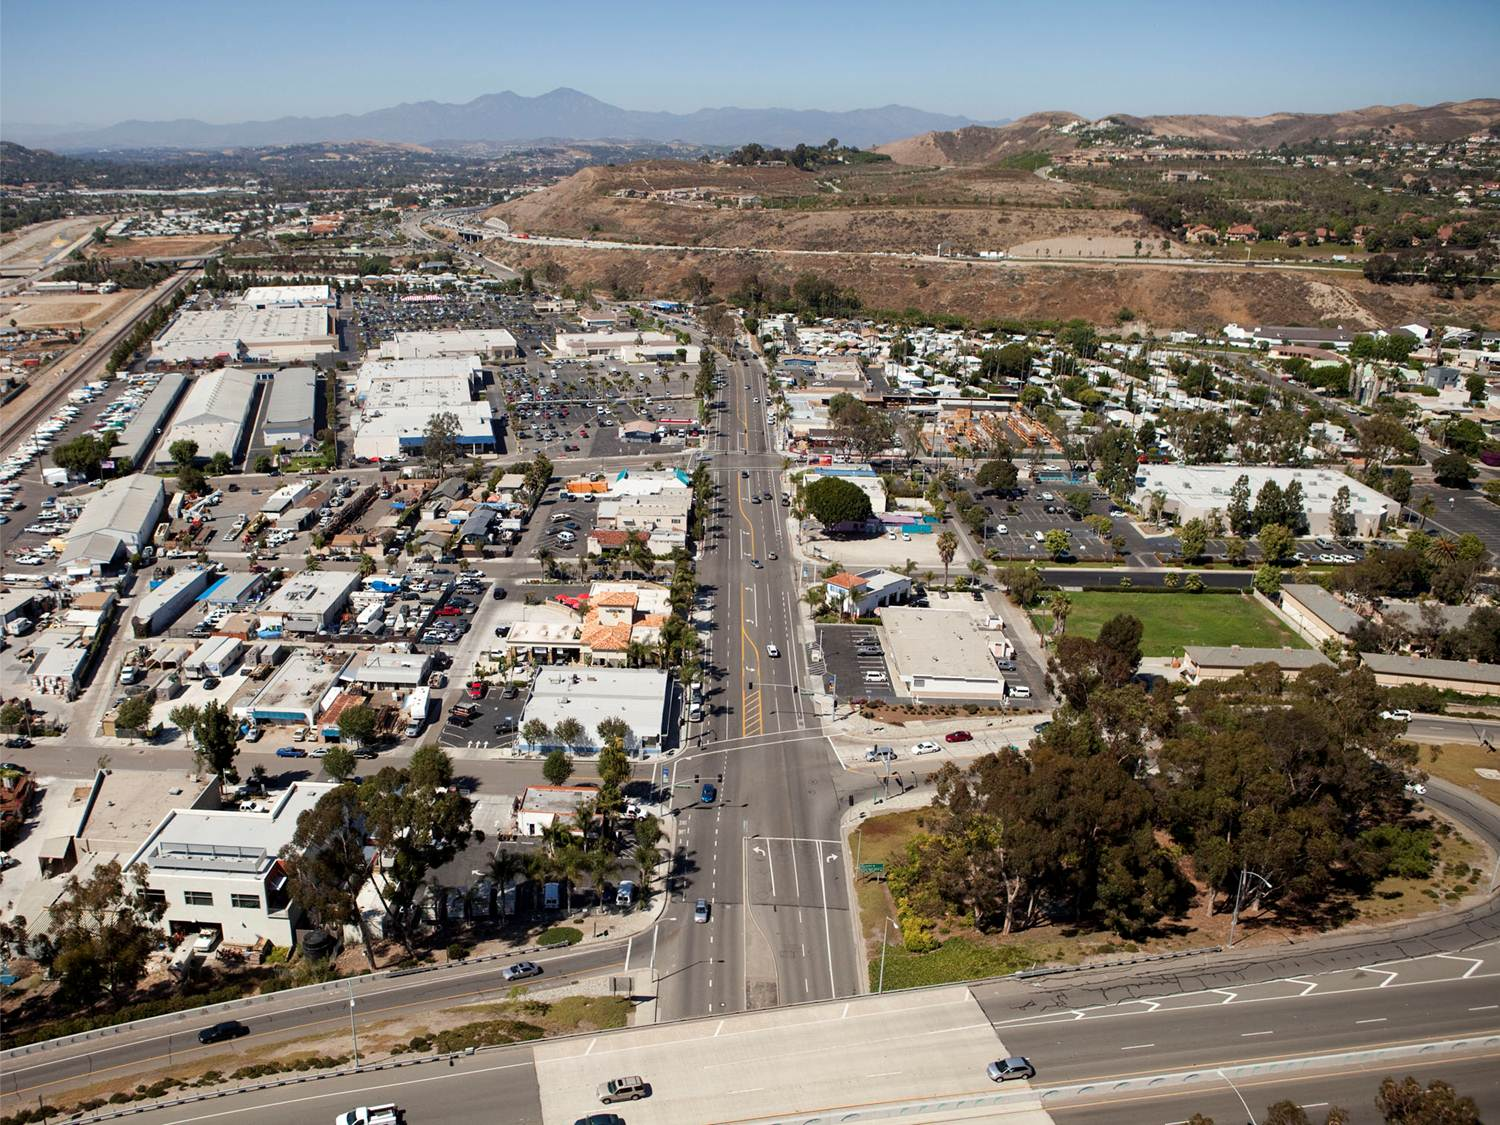 An aerial view of the Doheny Village area of Capistrano Beach in Dana Point. Photo: Courtesy of the city of Dana Point/ROMA Design Group